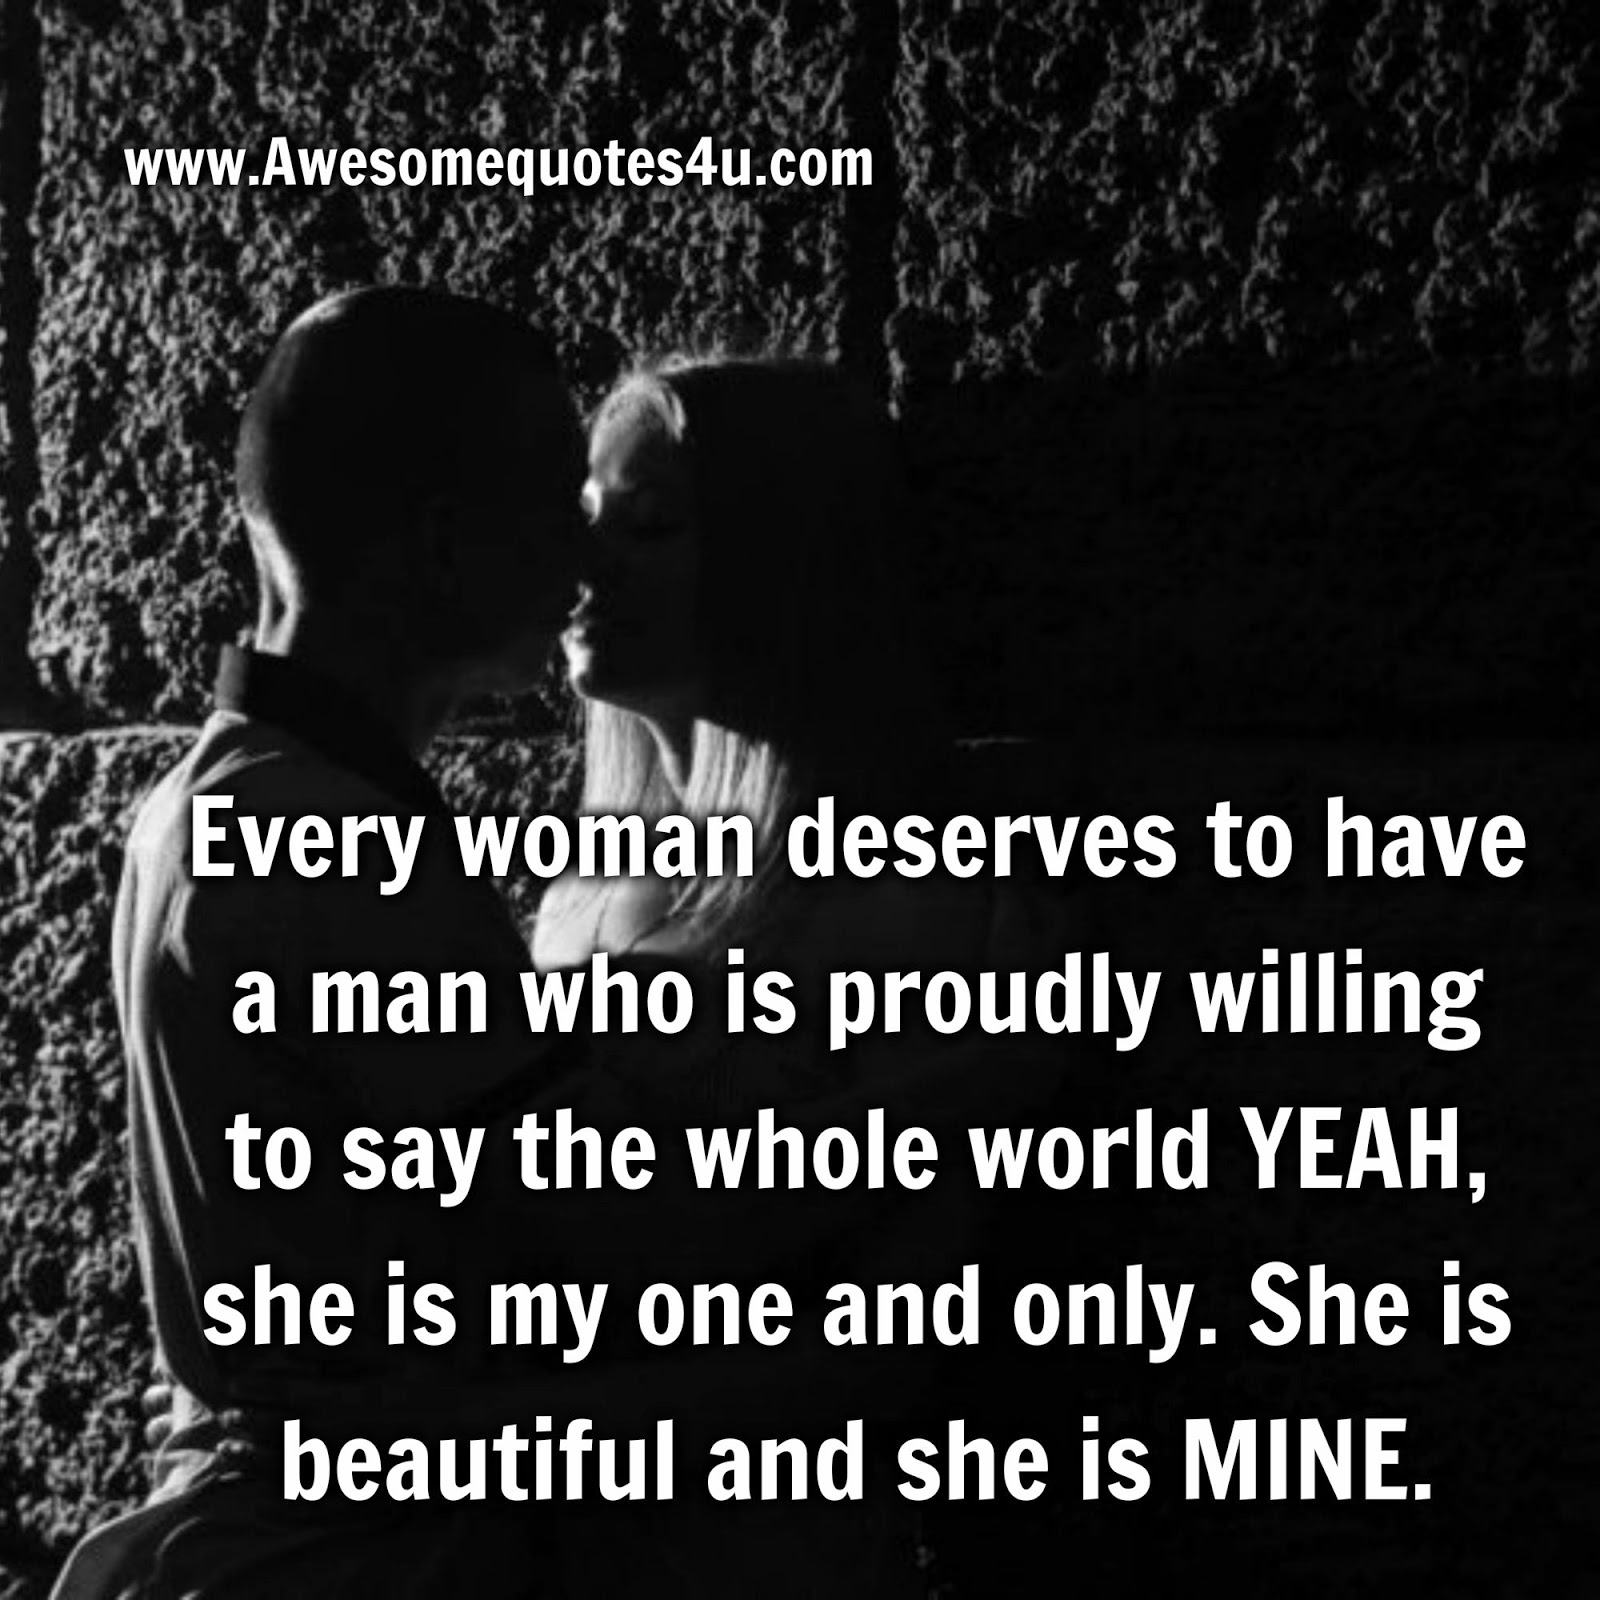 I Deserve A Good Man Quotes: Awesome Quotes: What Every Woman Deserve?